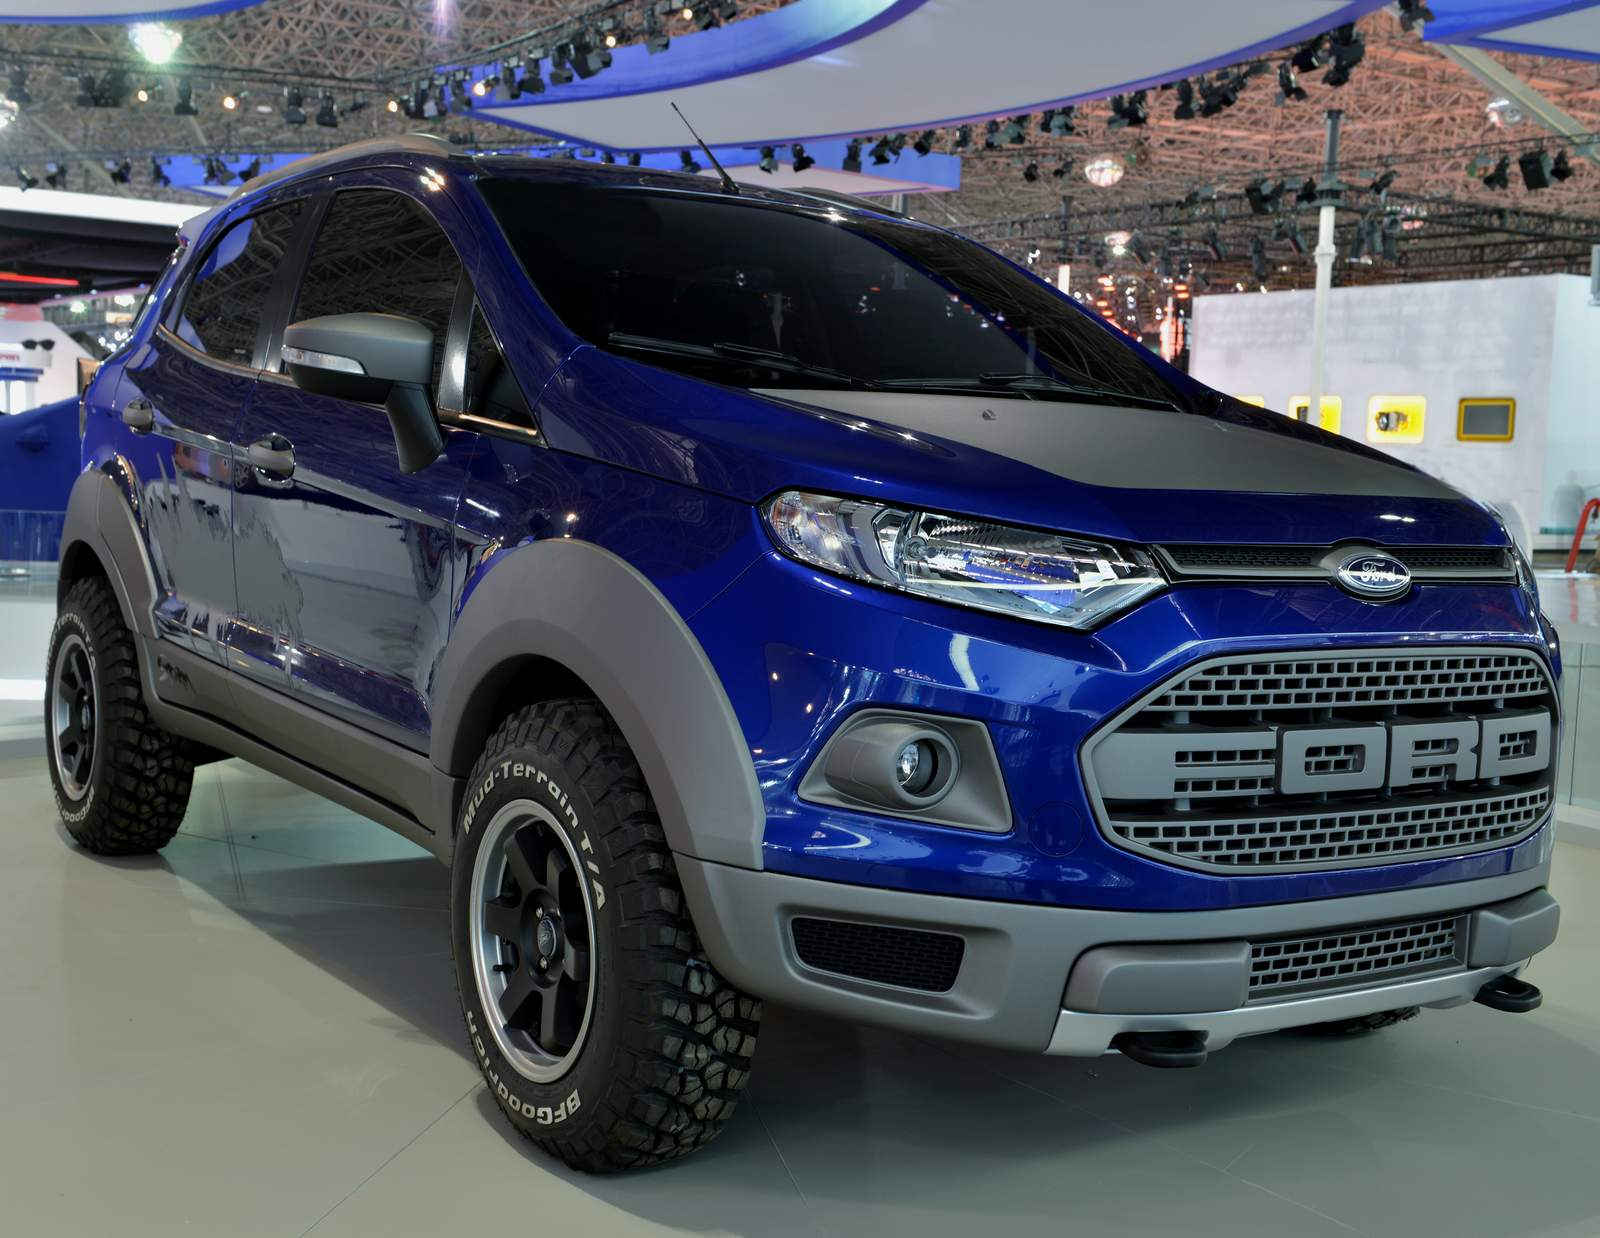 ford escape modifikasi html with Ecosport E Fiesta Terao Motor 10 on Offroad Touring Motorcycles also 1955 1st Series Vin Number in addition Marina Bay Sands Skypark Infinity Pool Escape With Style furthermore 1955 1st Series Vin Number further 595266 Velg Ford Fiesta.